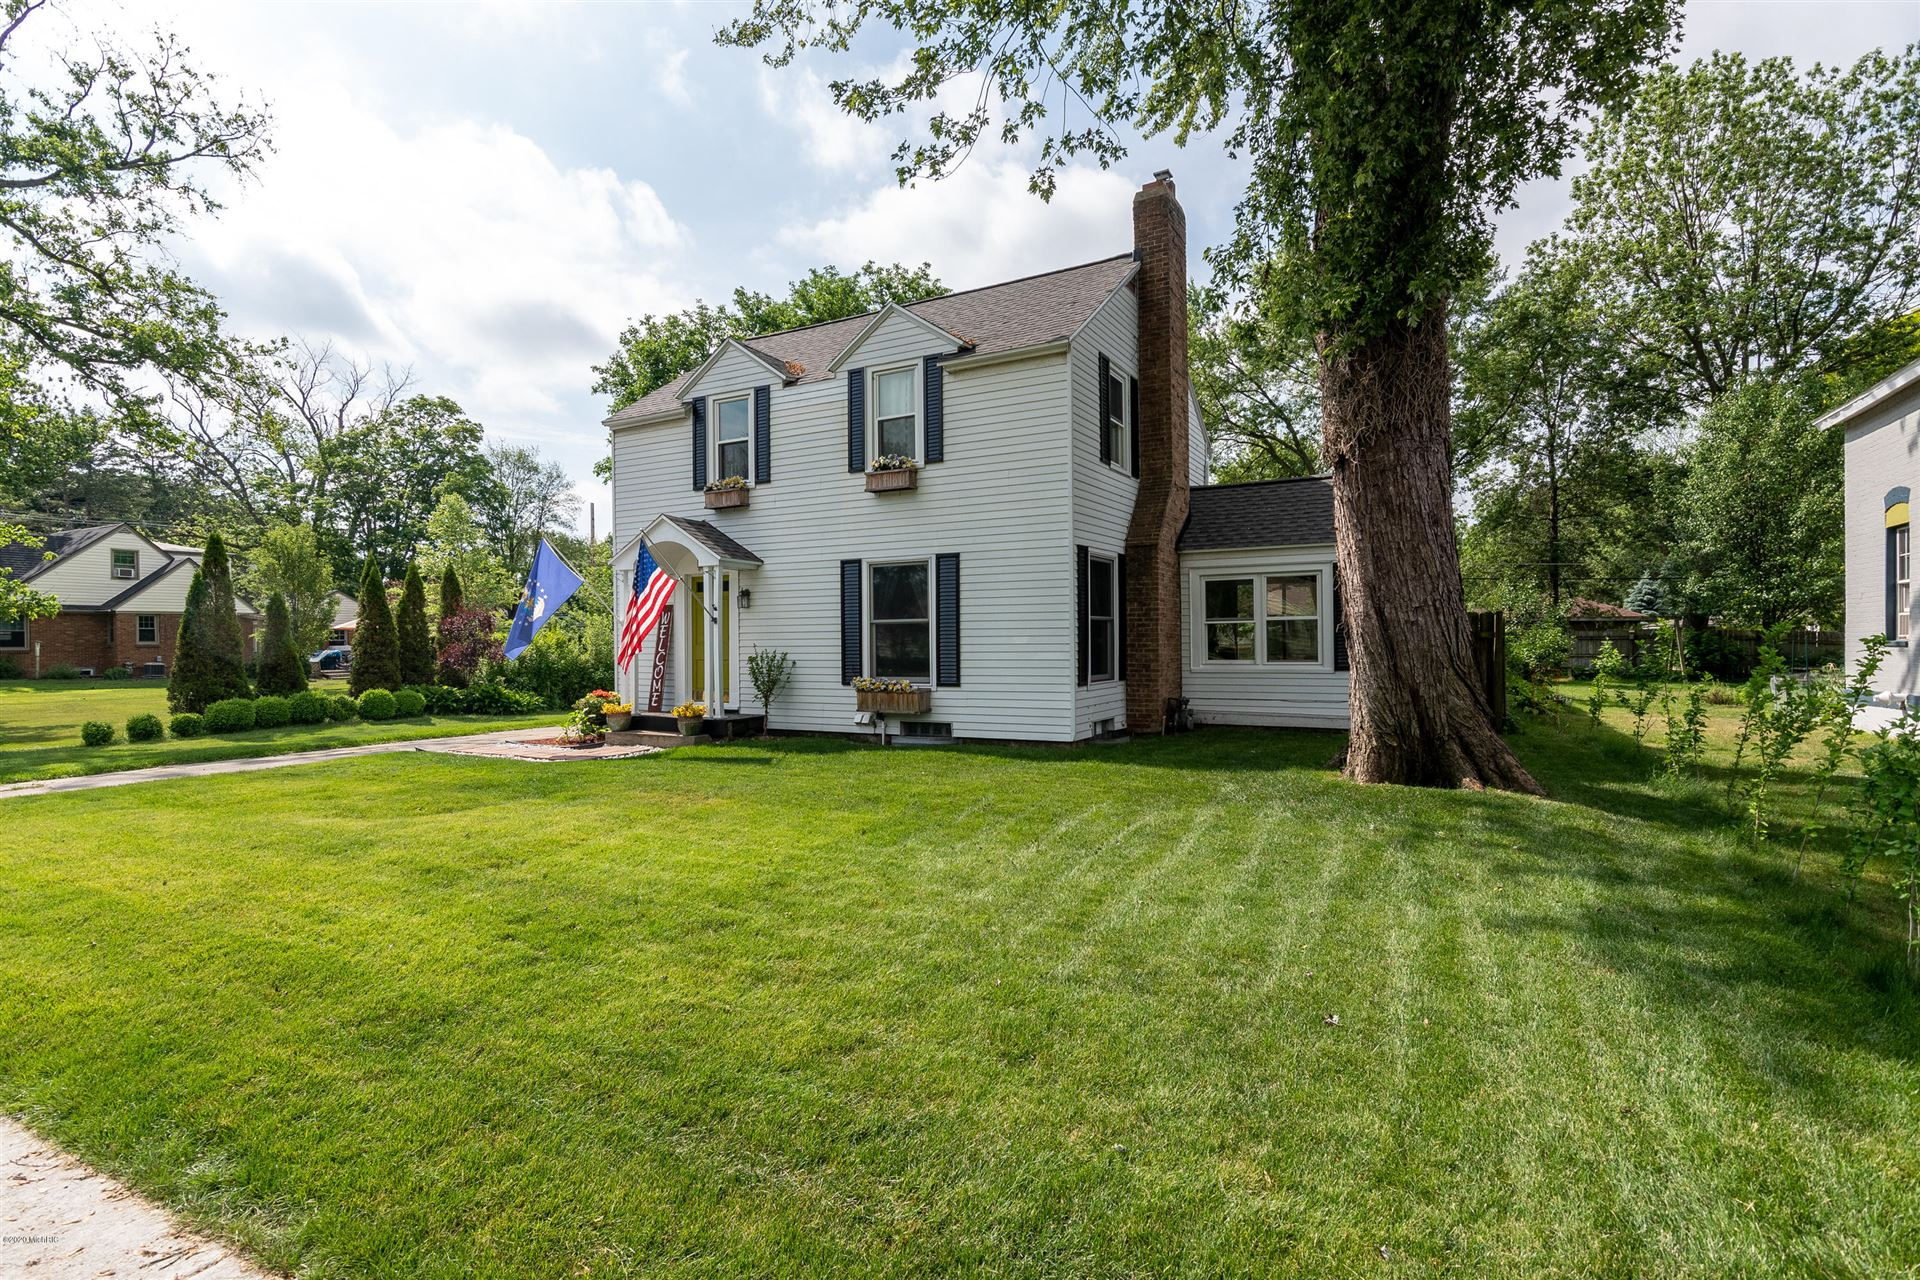 22 W 32nd Street, Holland, MI 49423 - MLS#: 20023634